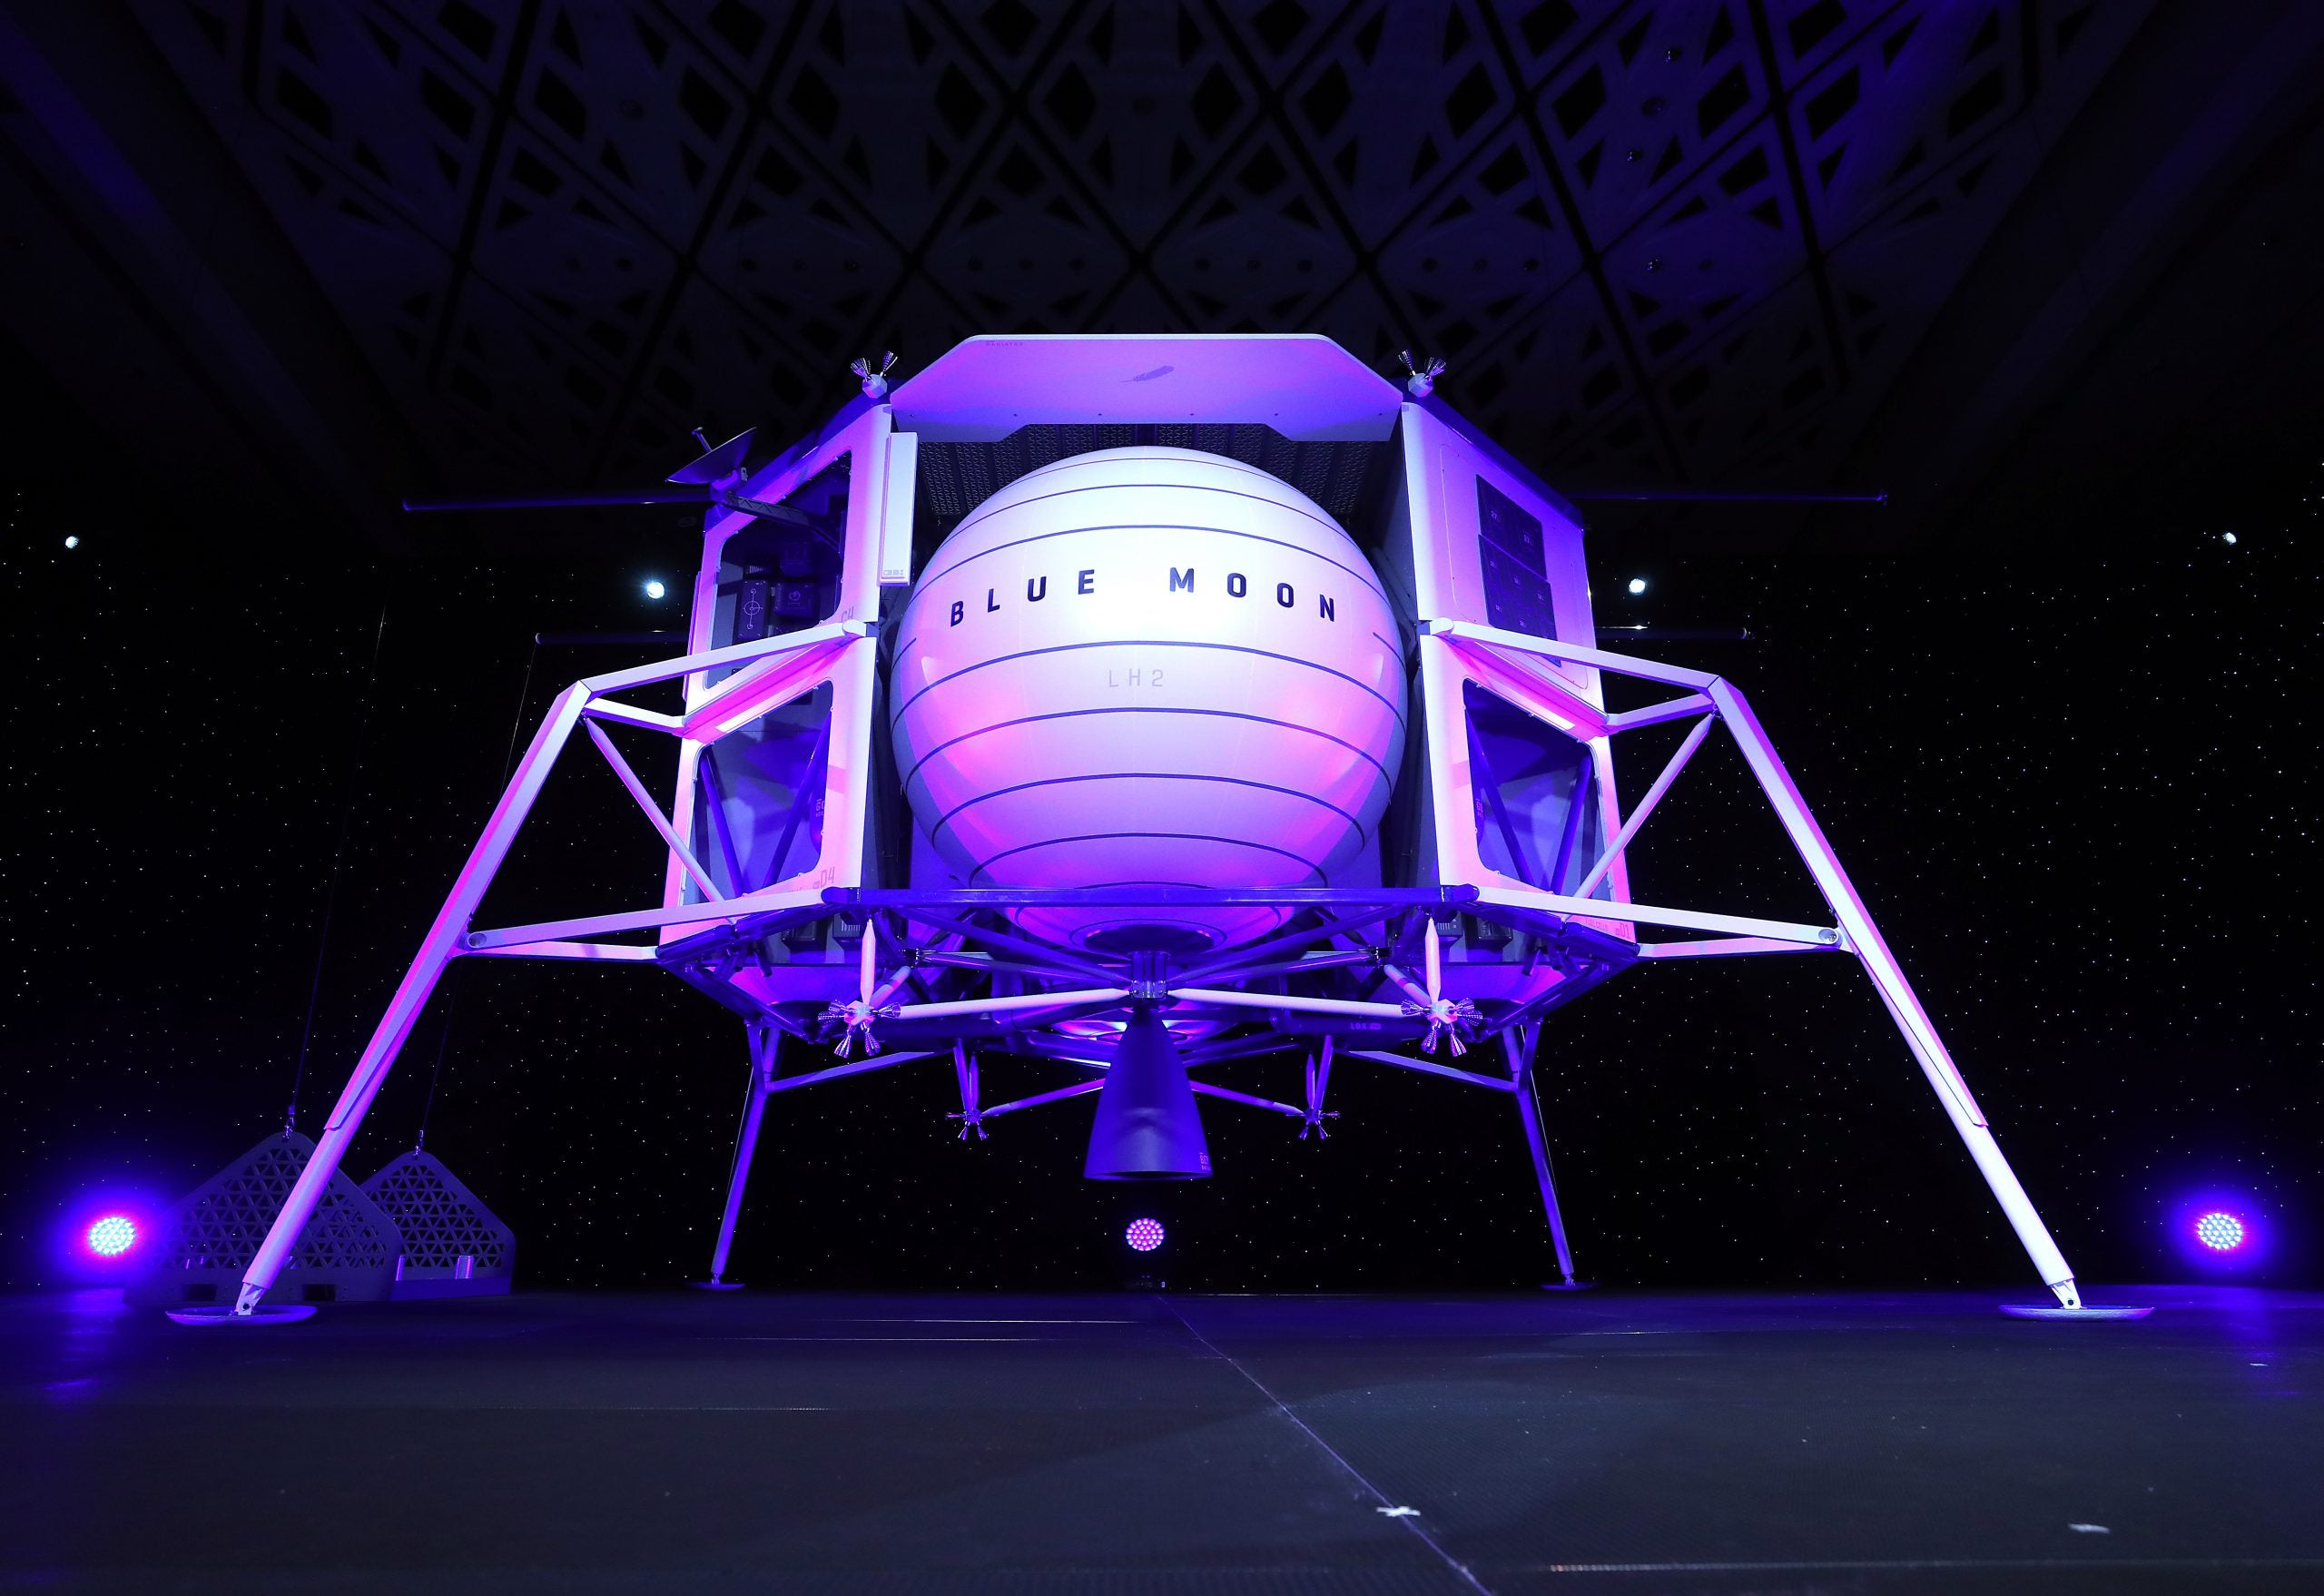 Rocket man: why Jeff Bezos wants to take humans into space